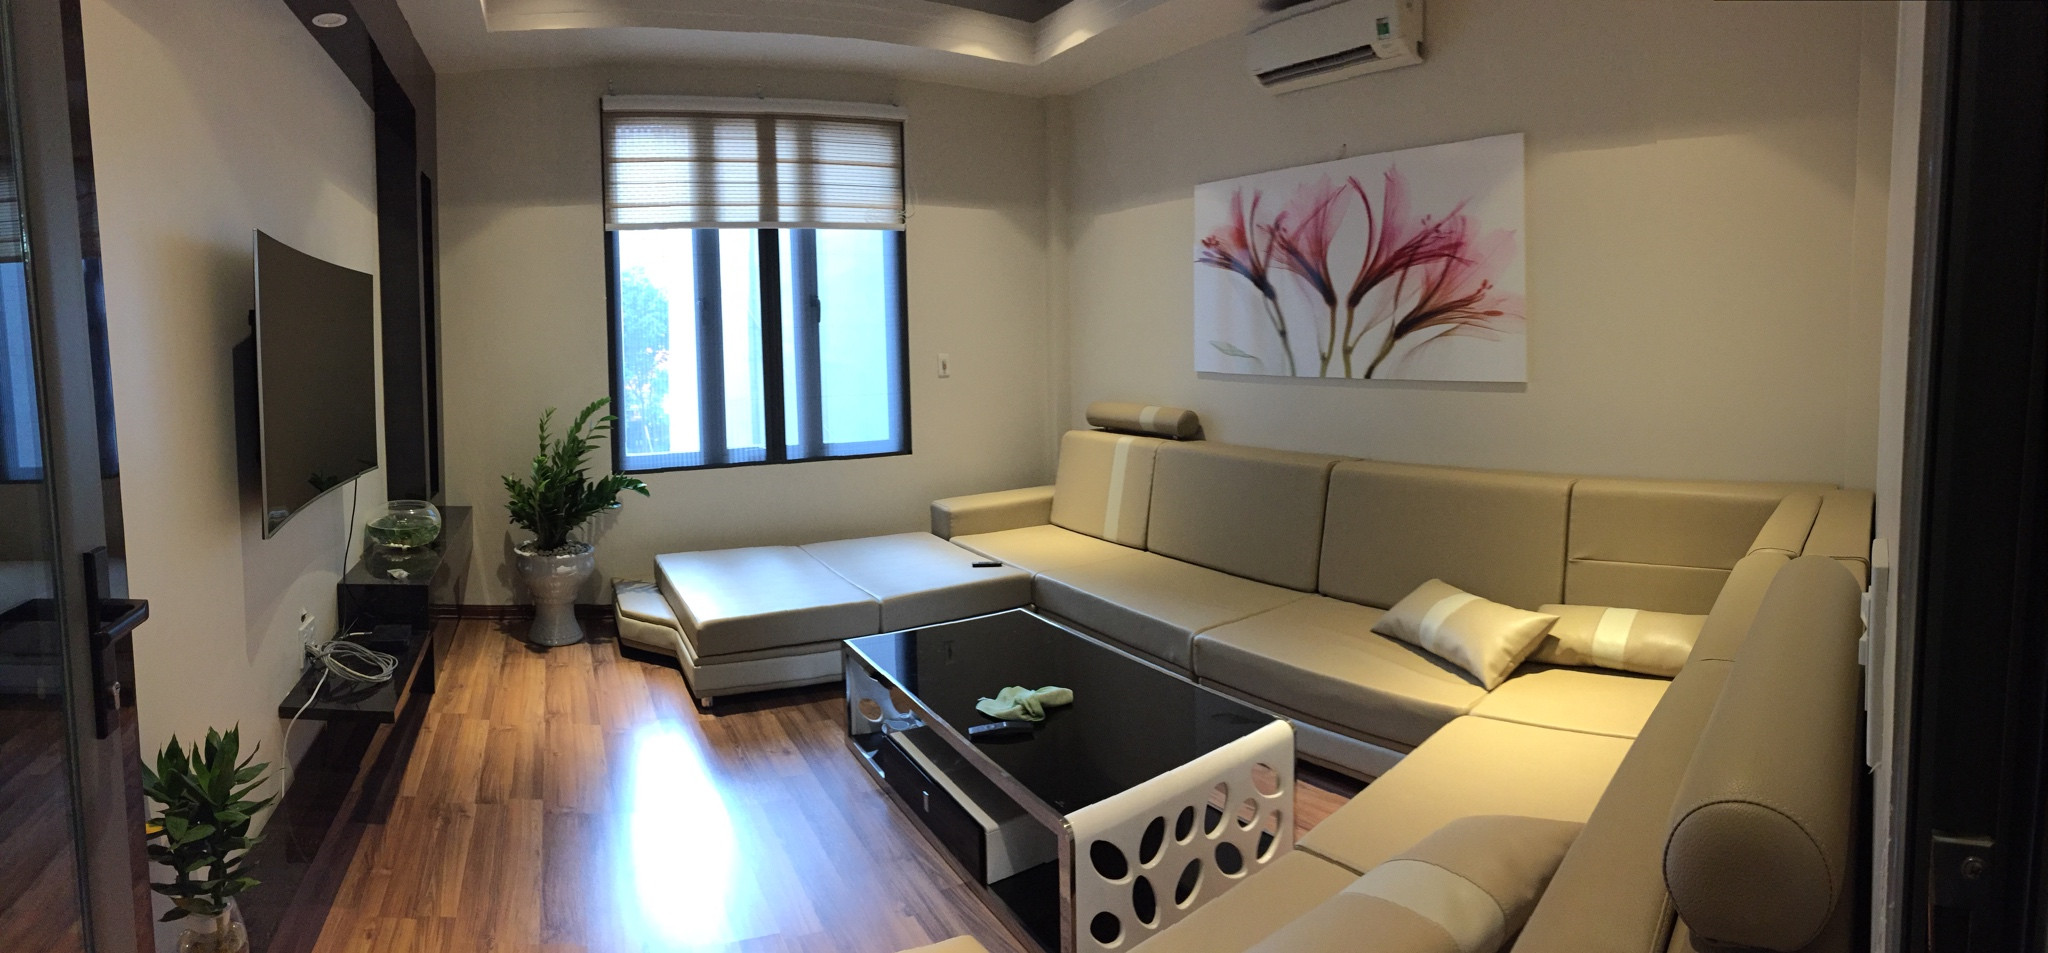 4 BRs House for rent at Le Hong Phong str, Hai Phong city